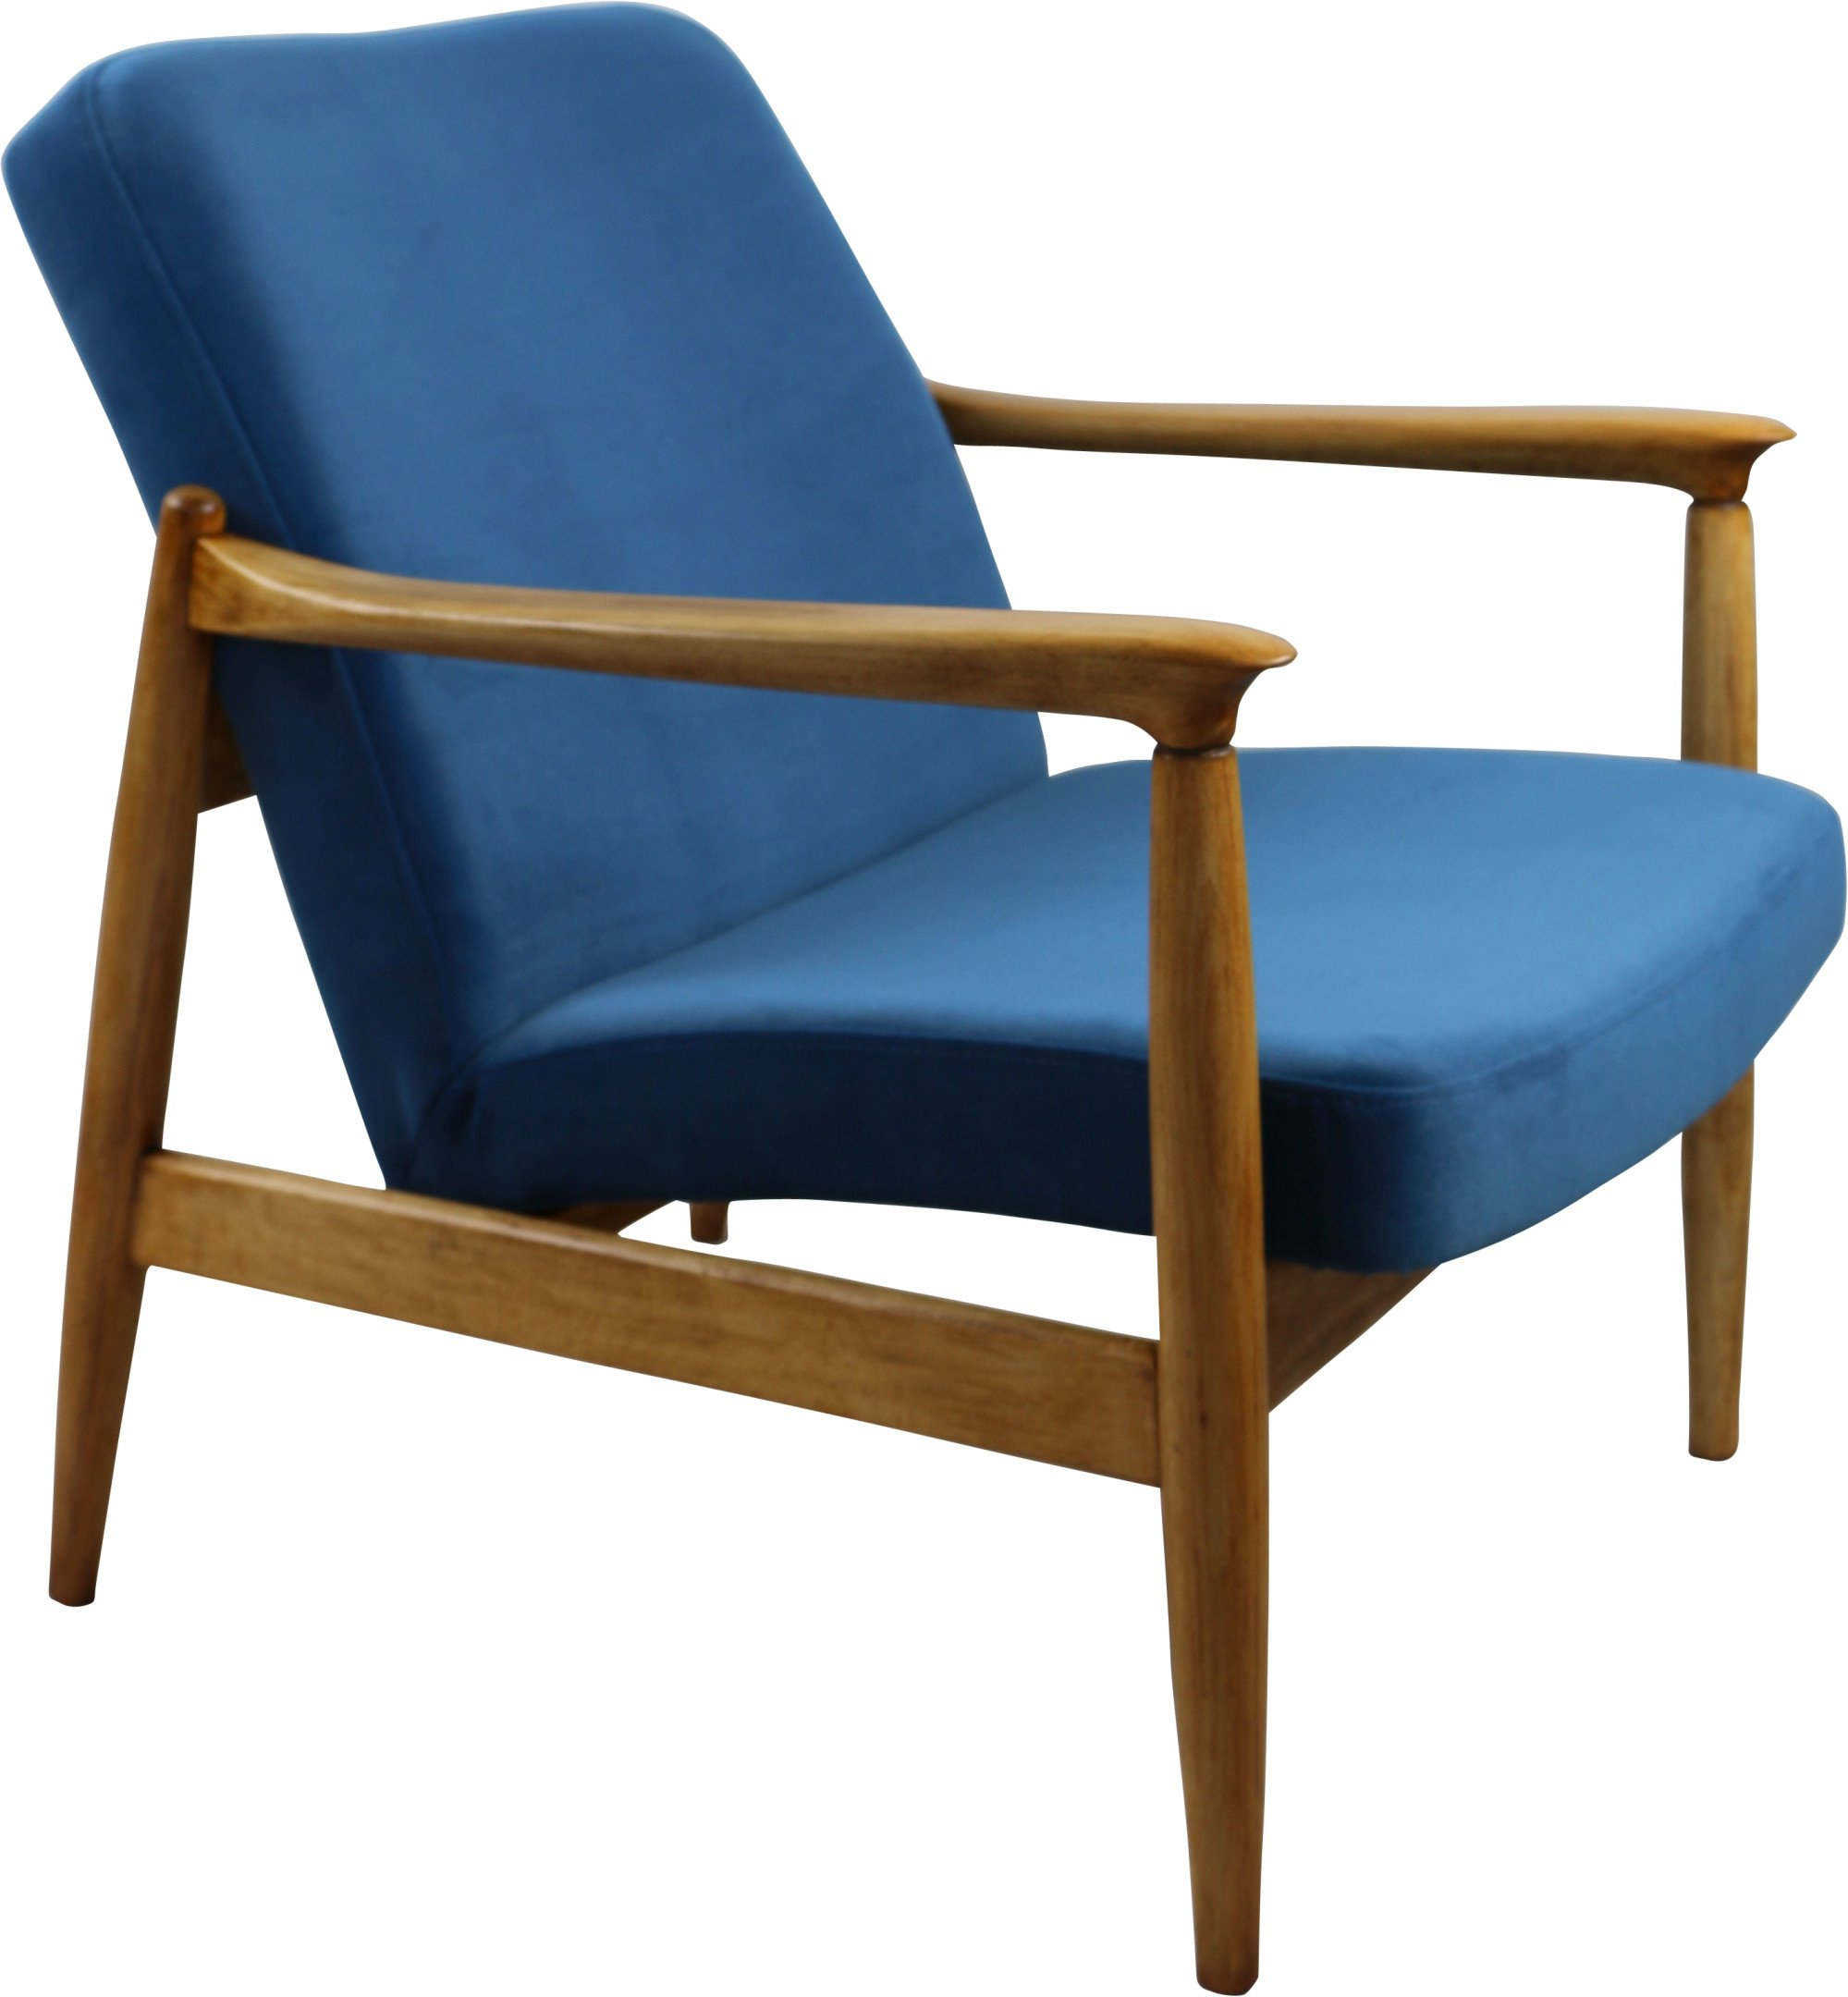 GFM-64 Armchair by E. Homa, Poland, 1970s